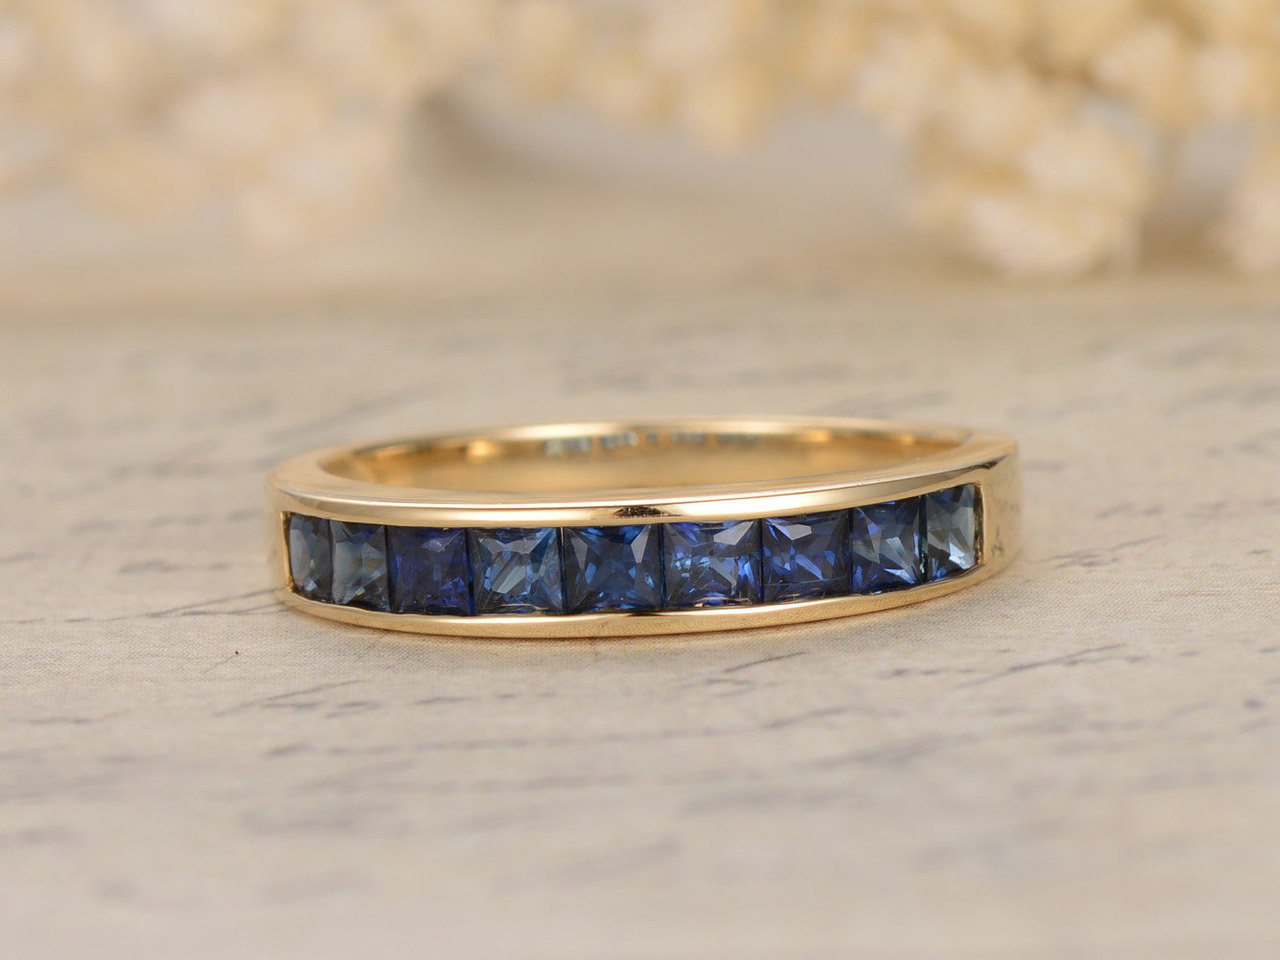 Princess Cut Sapphire Engagement Ring Wedding Band 14K Yellow Gold ...